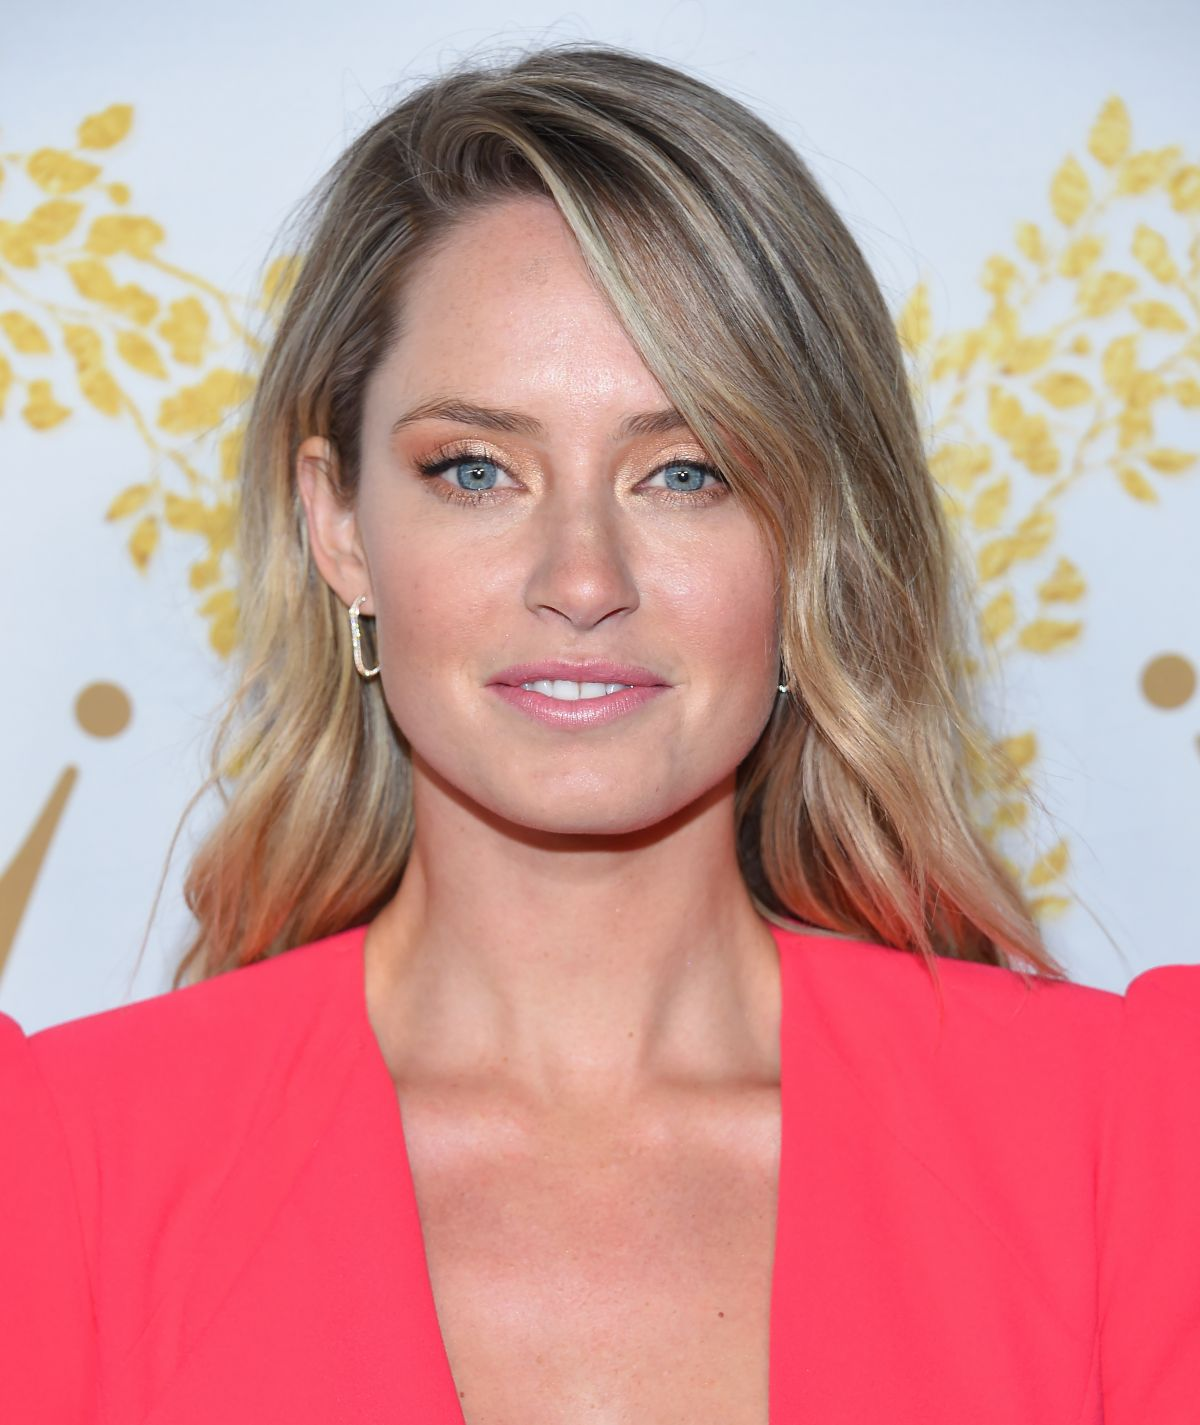 Merritt Patterson Biography - Facts, Childhood, Family